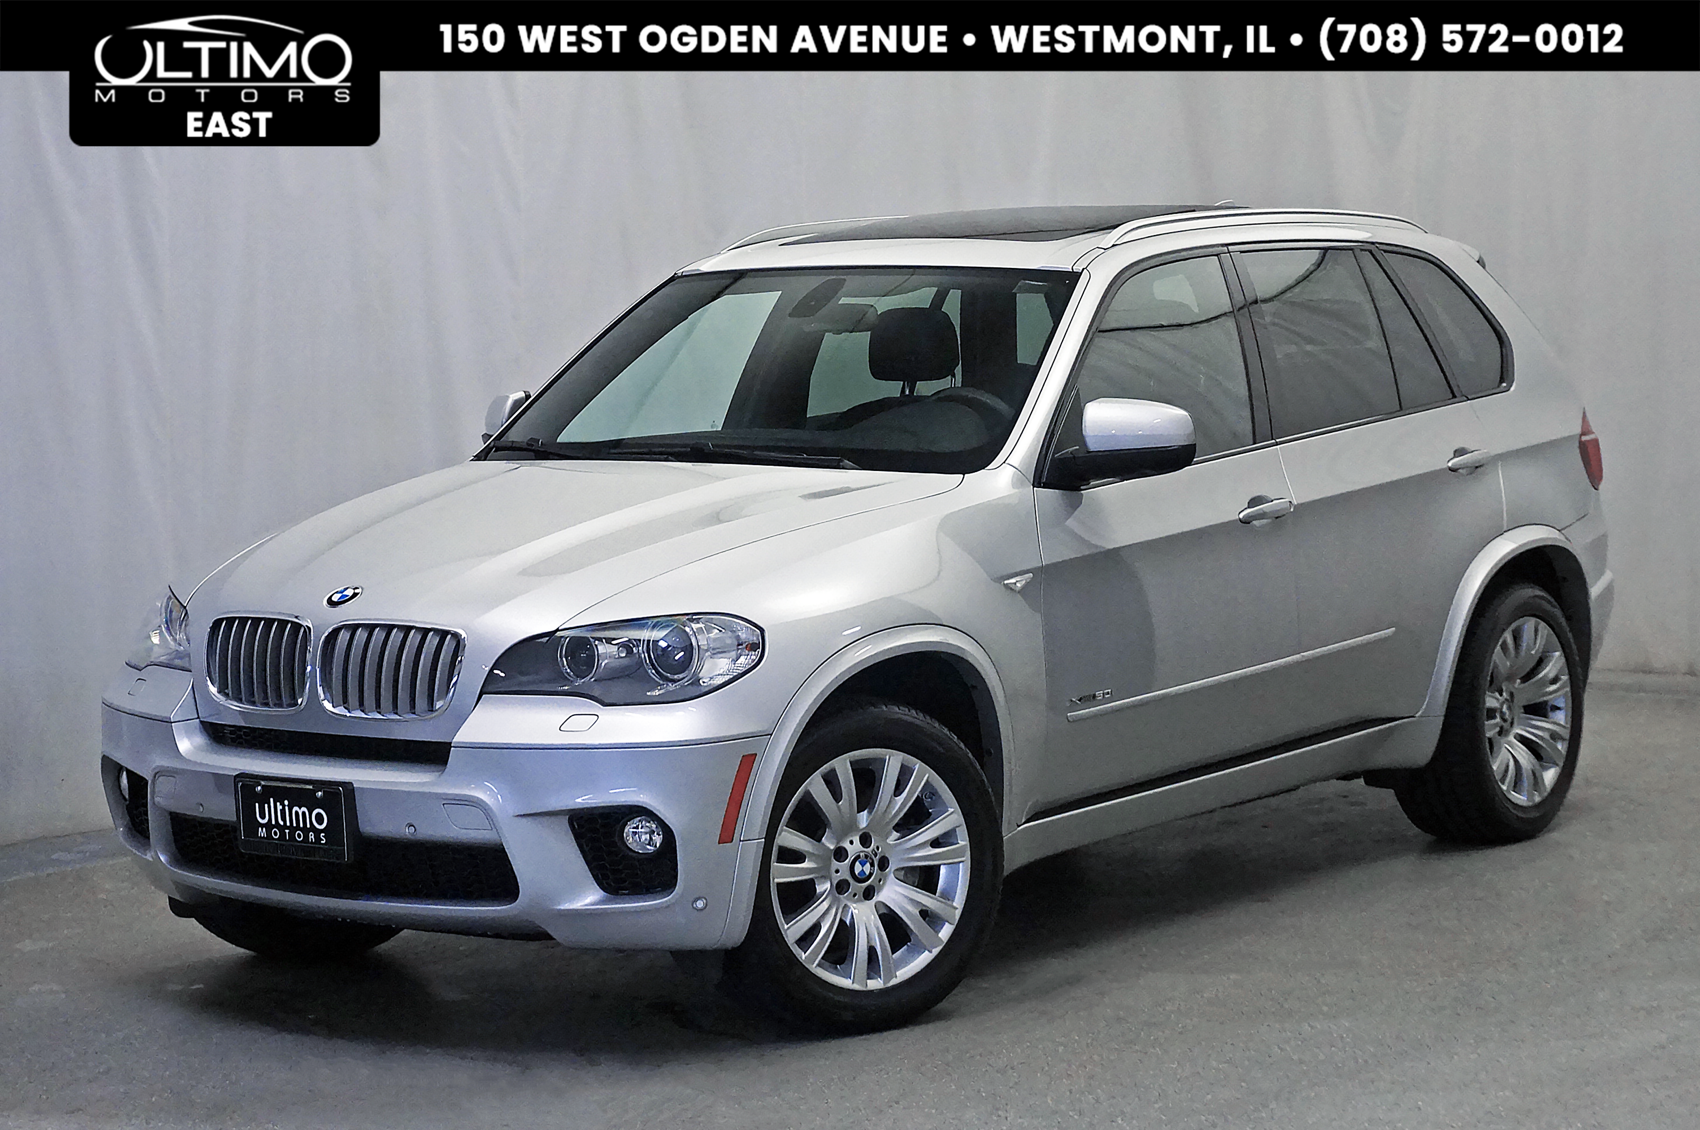 Pre-Owned 2013 BMW X5 xDrive50i M-Sport Package, Pano Roof, Nav, Camera, Cold Weather Package